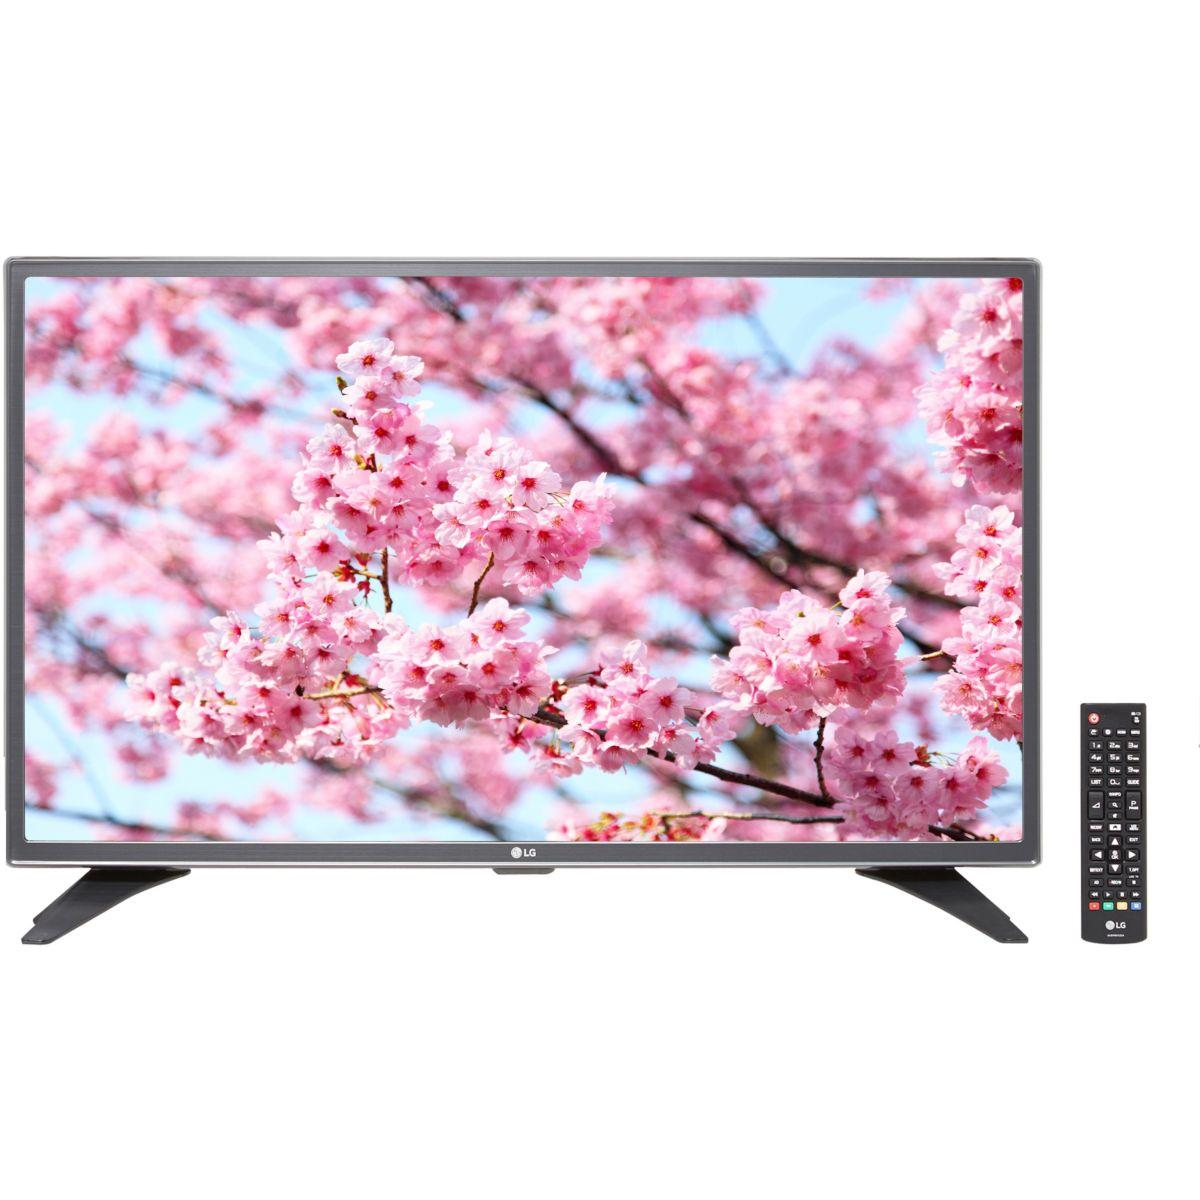 smart tv led full hd 80 cm lg 32lh604v reconditionn back market. Black Bedroom Furniture Sets. Home Design Ideas